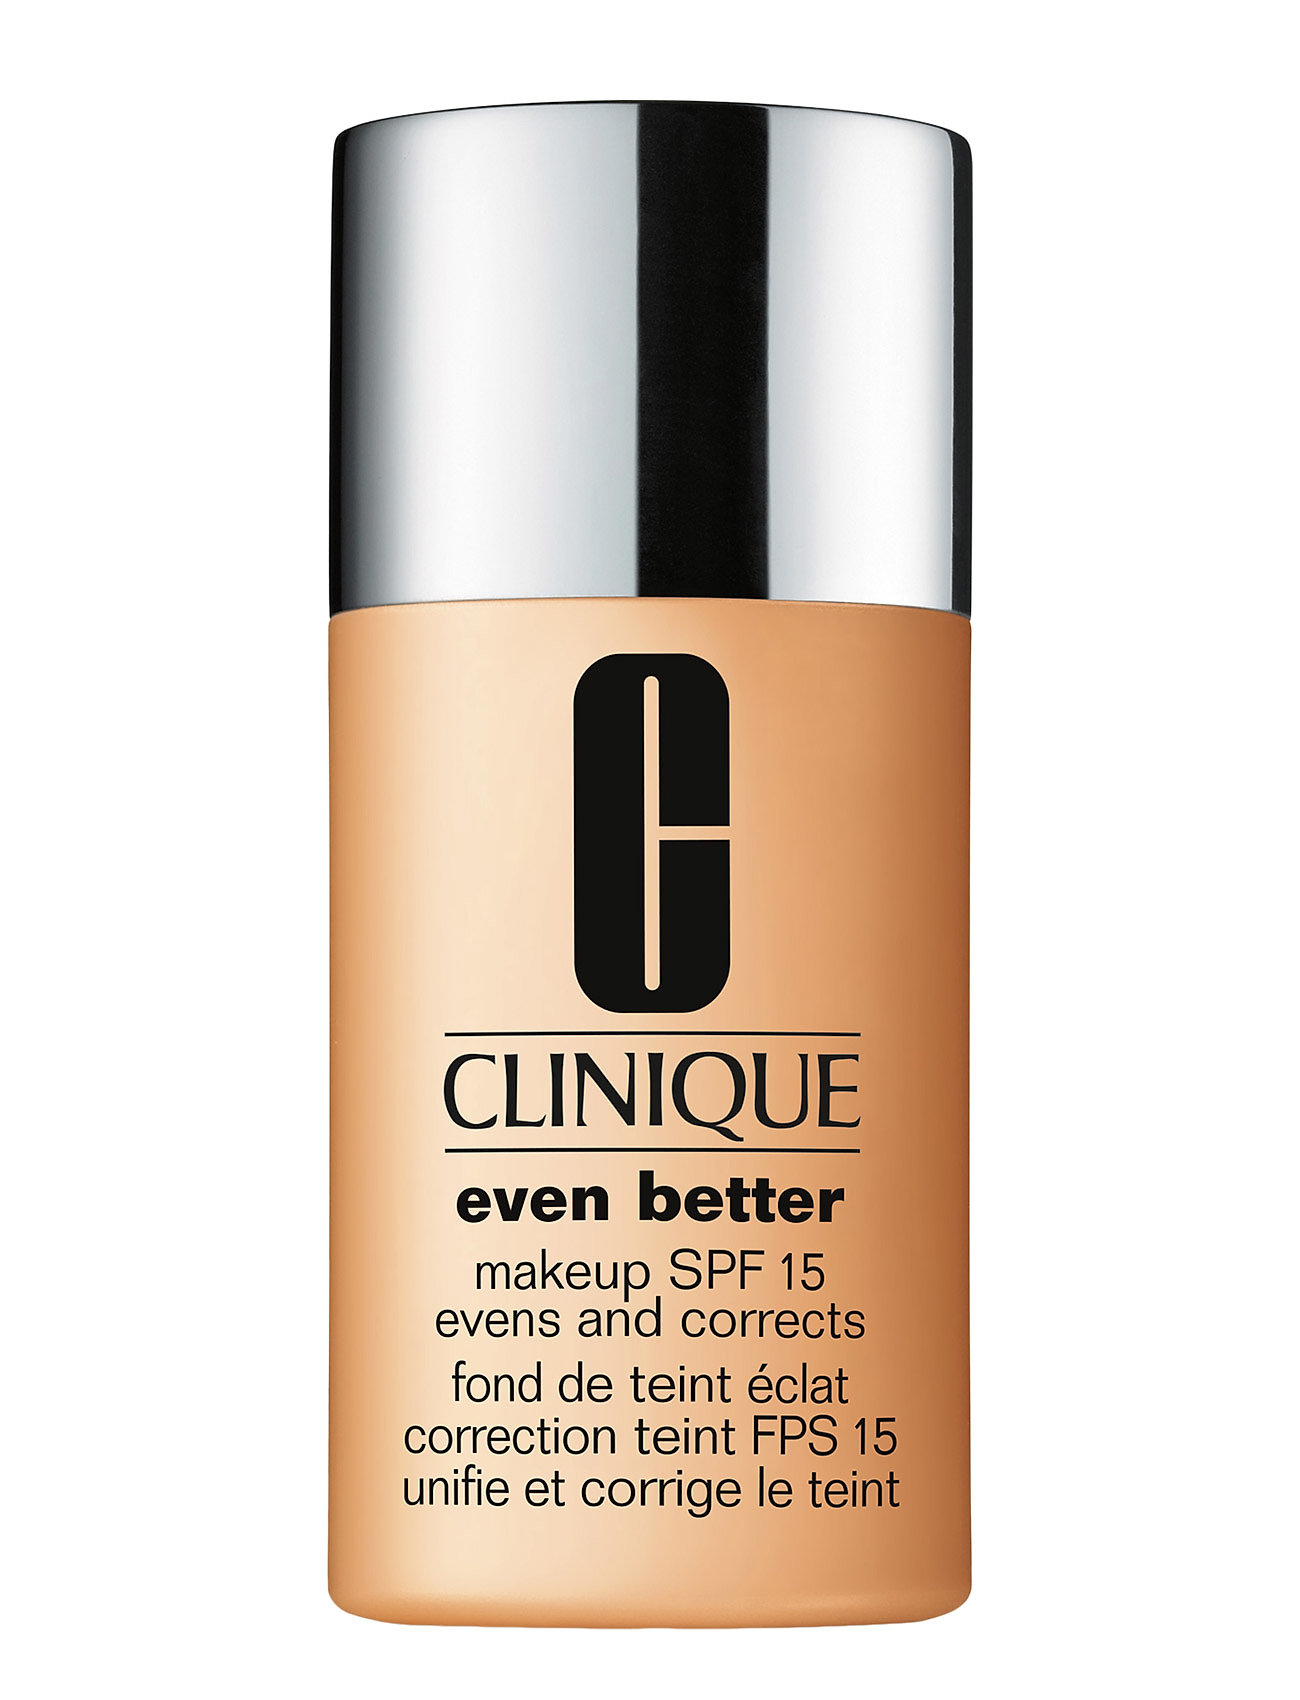 Clinique Even Better Makeup WN 92 Toasted Almond 30ml - WN 92 TOASTED ALMOND